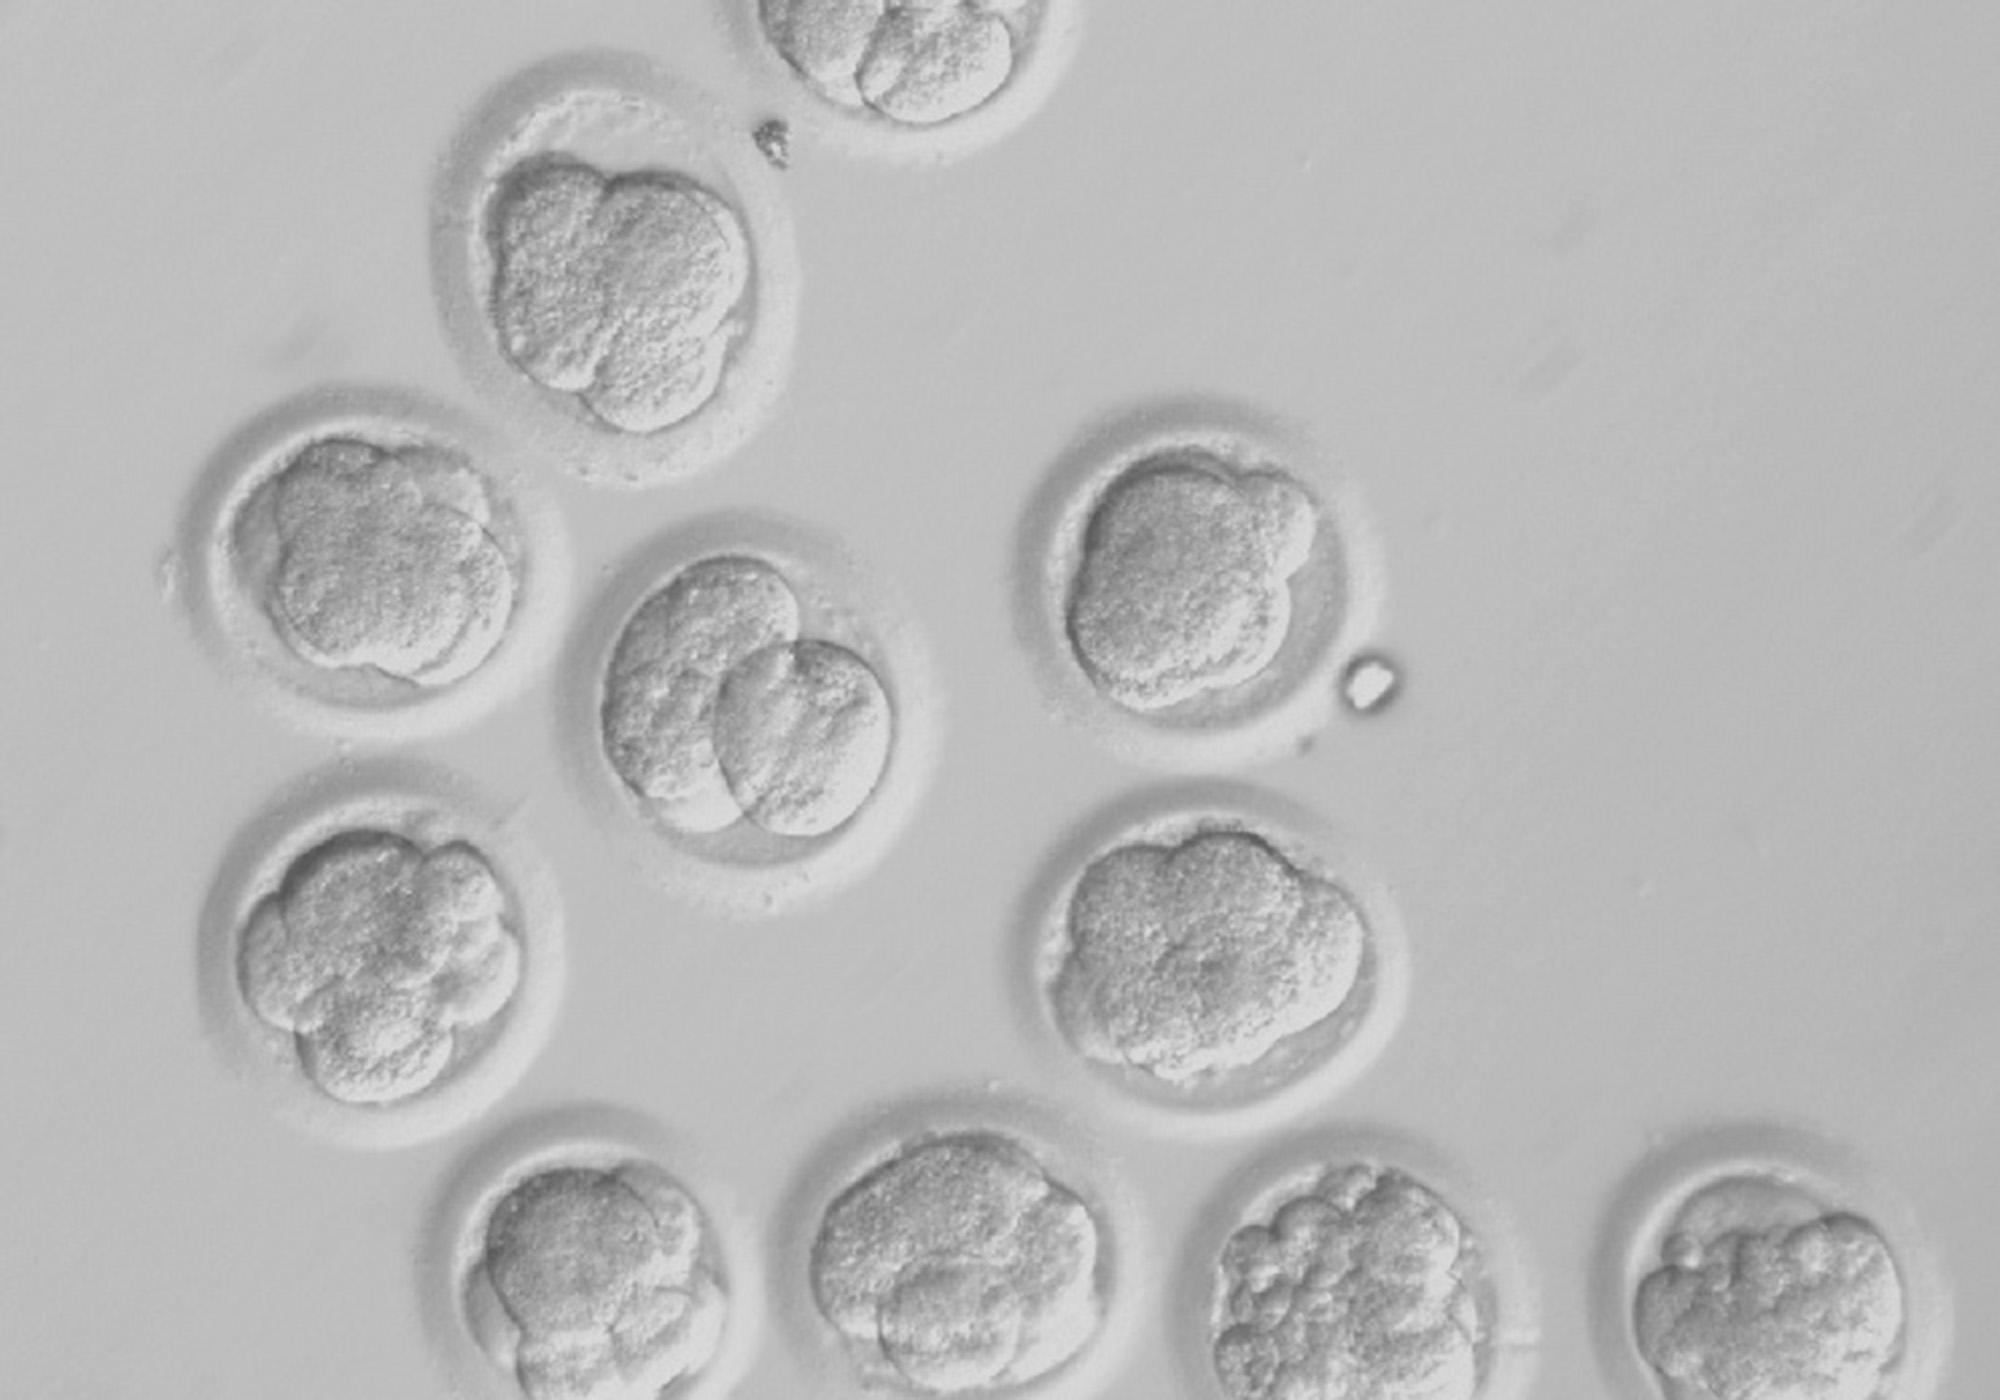 This undated image made available by the Oregon Health & Science University in May 2013 shows developing cloned human embryos. Scientists have finally recovered stem cells from cloned human embryos, a longstanding goal that could lead to new treatments for such illnesses as Parkinson's disease and diabetes. In the Wednesday, May 15, 2013 edition of the journal Cell, scientists at the Oregon Health & Science University report harvesting stem cells from six embryos. Shoukhrat Mitalipov, who led the research, said the success came not from a single technical innovation, but from revising a series of steps in the process. (AP Photo/Oregon Health & Science University)